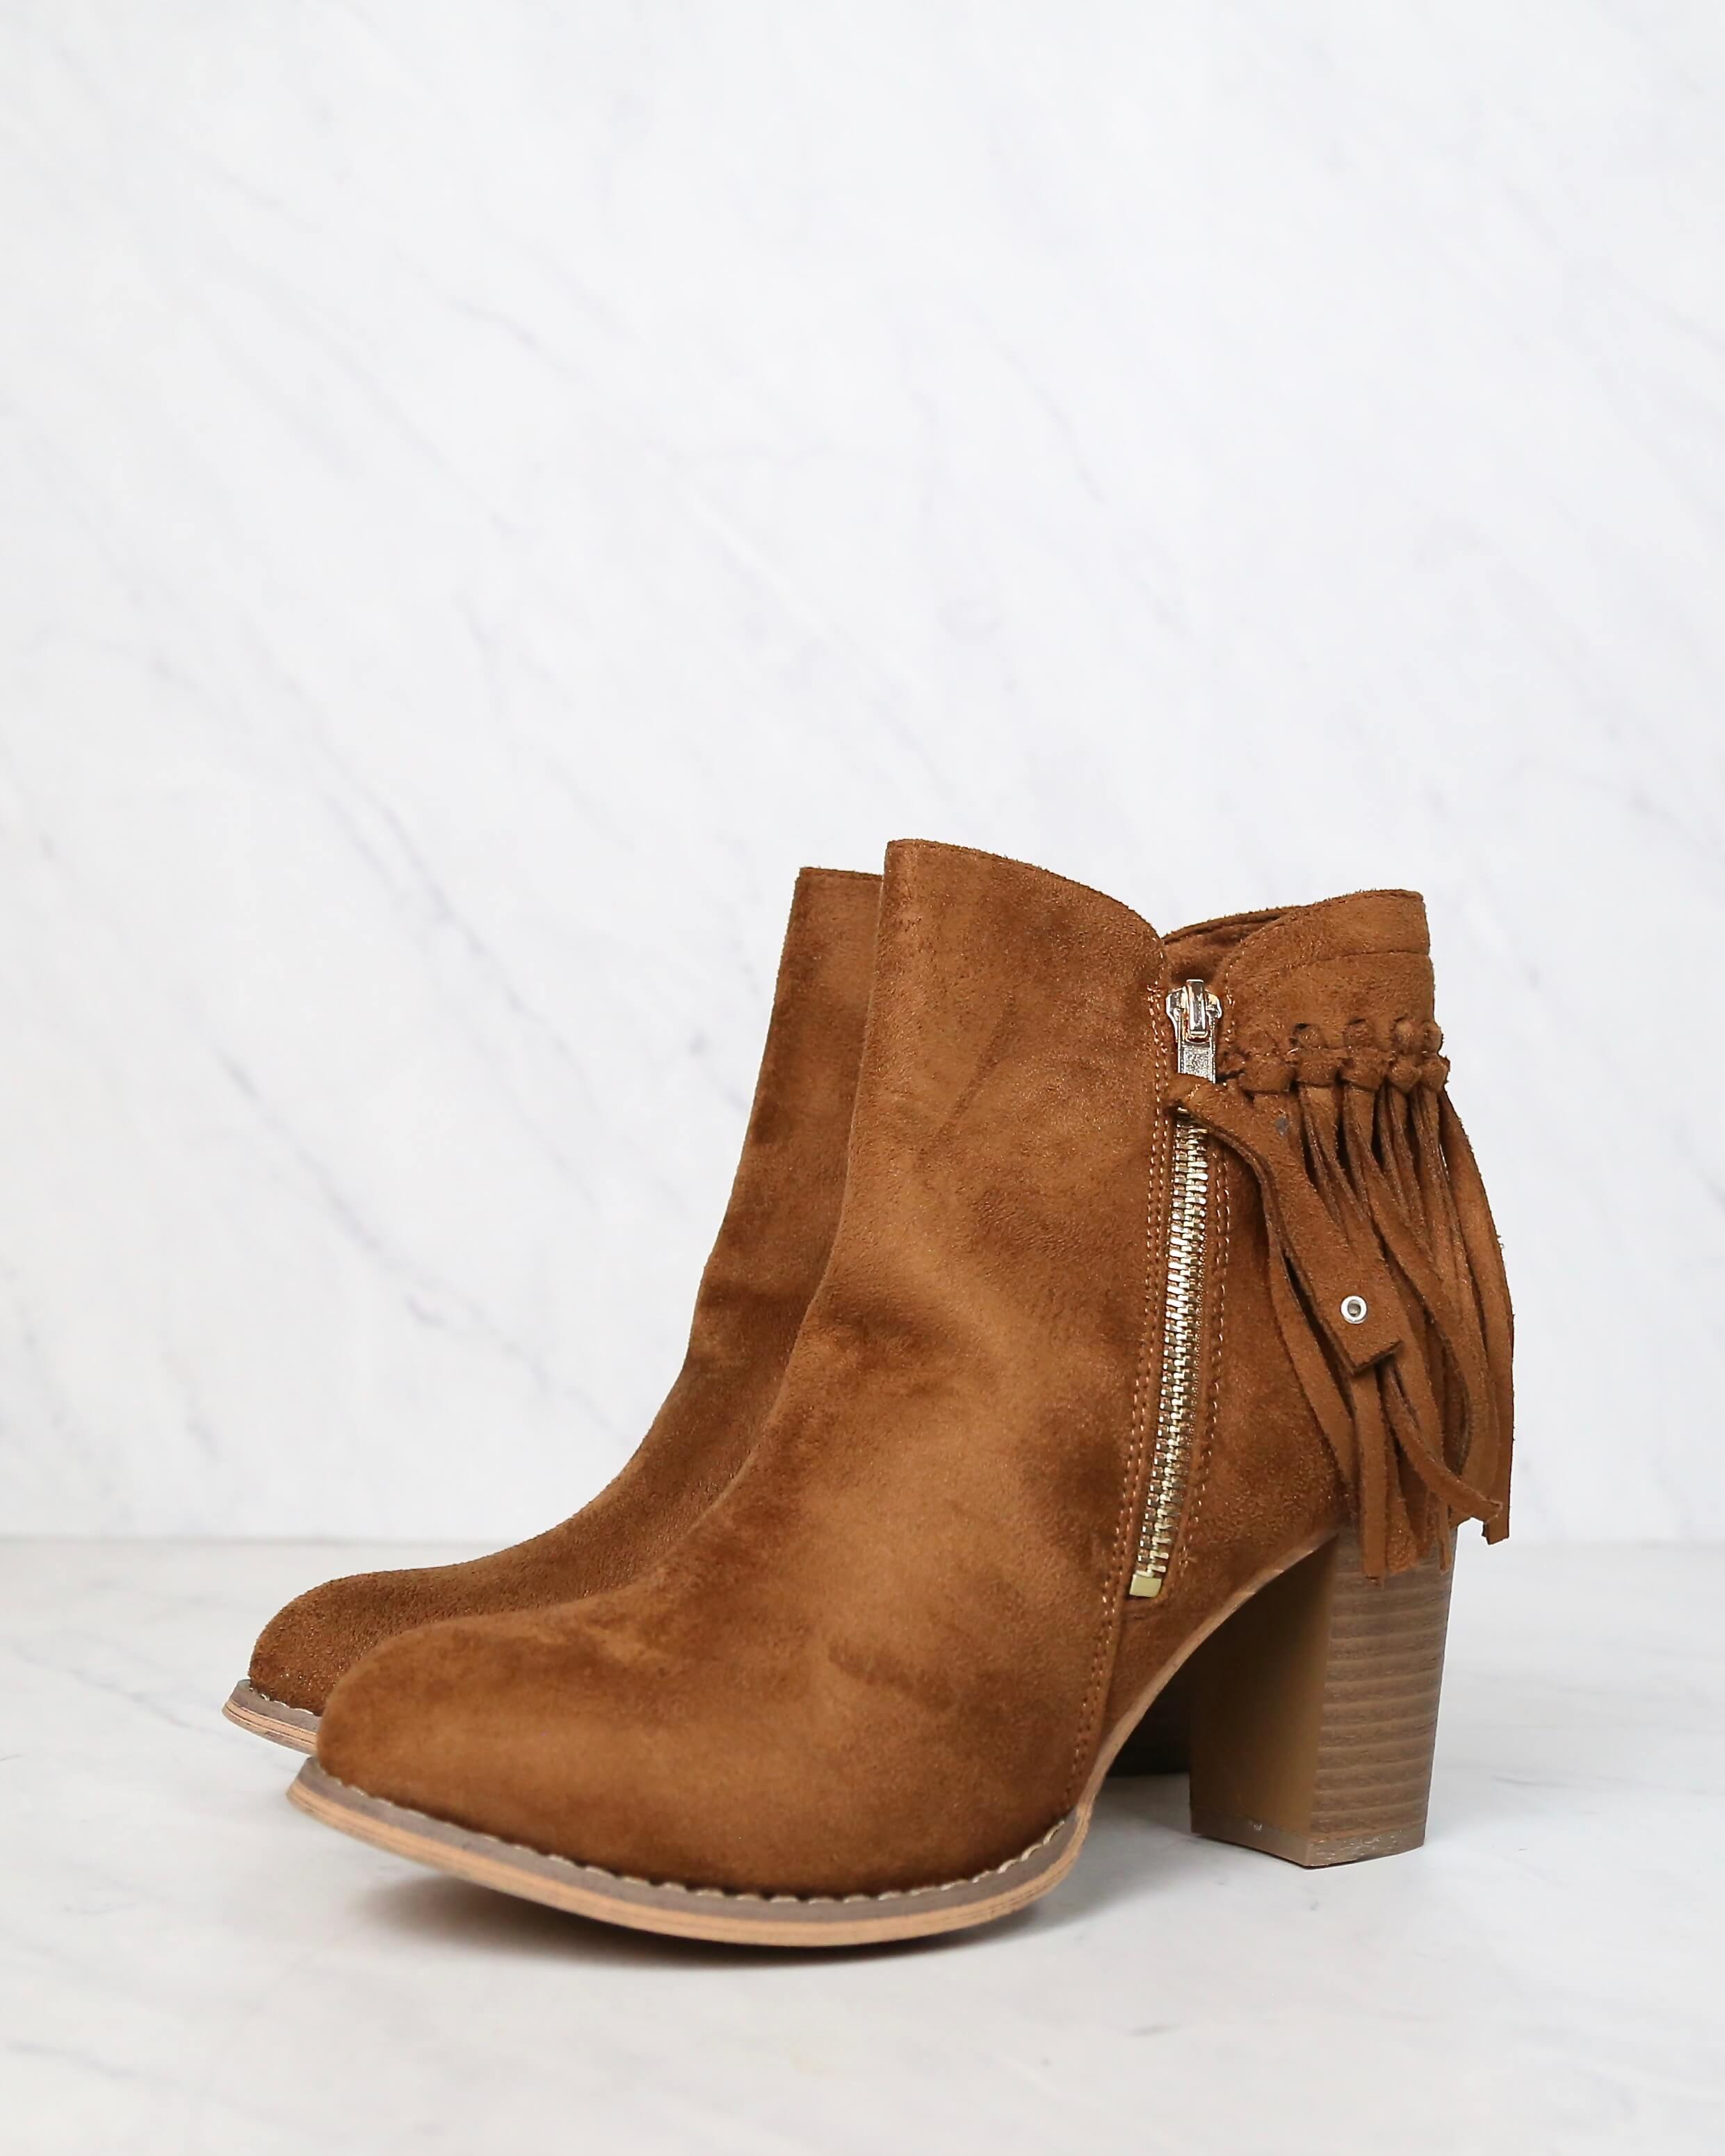 City Chic Fringe Vegan Suede Ankle Boots in Camel